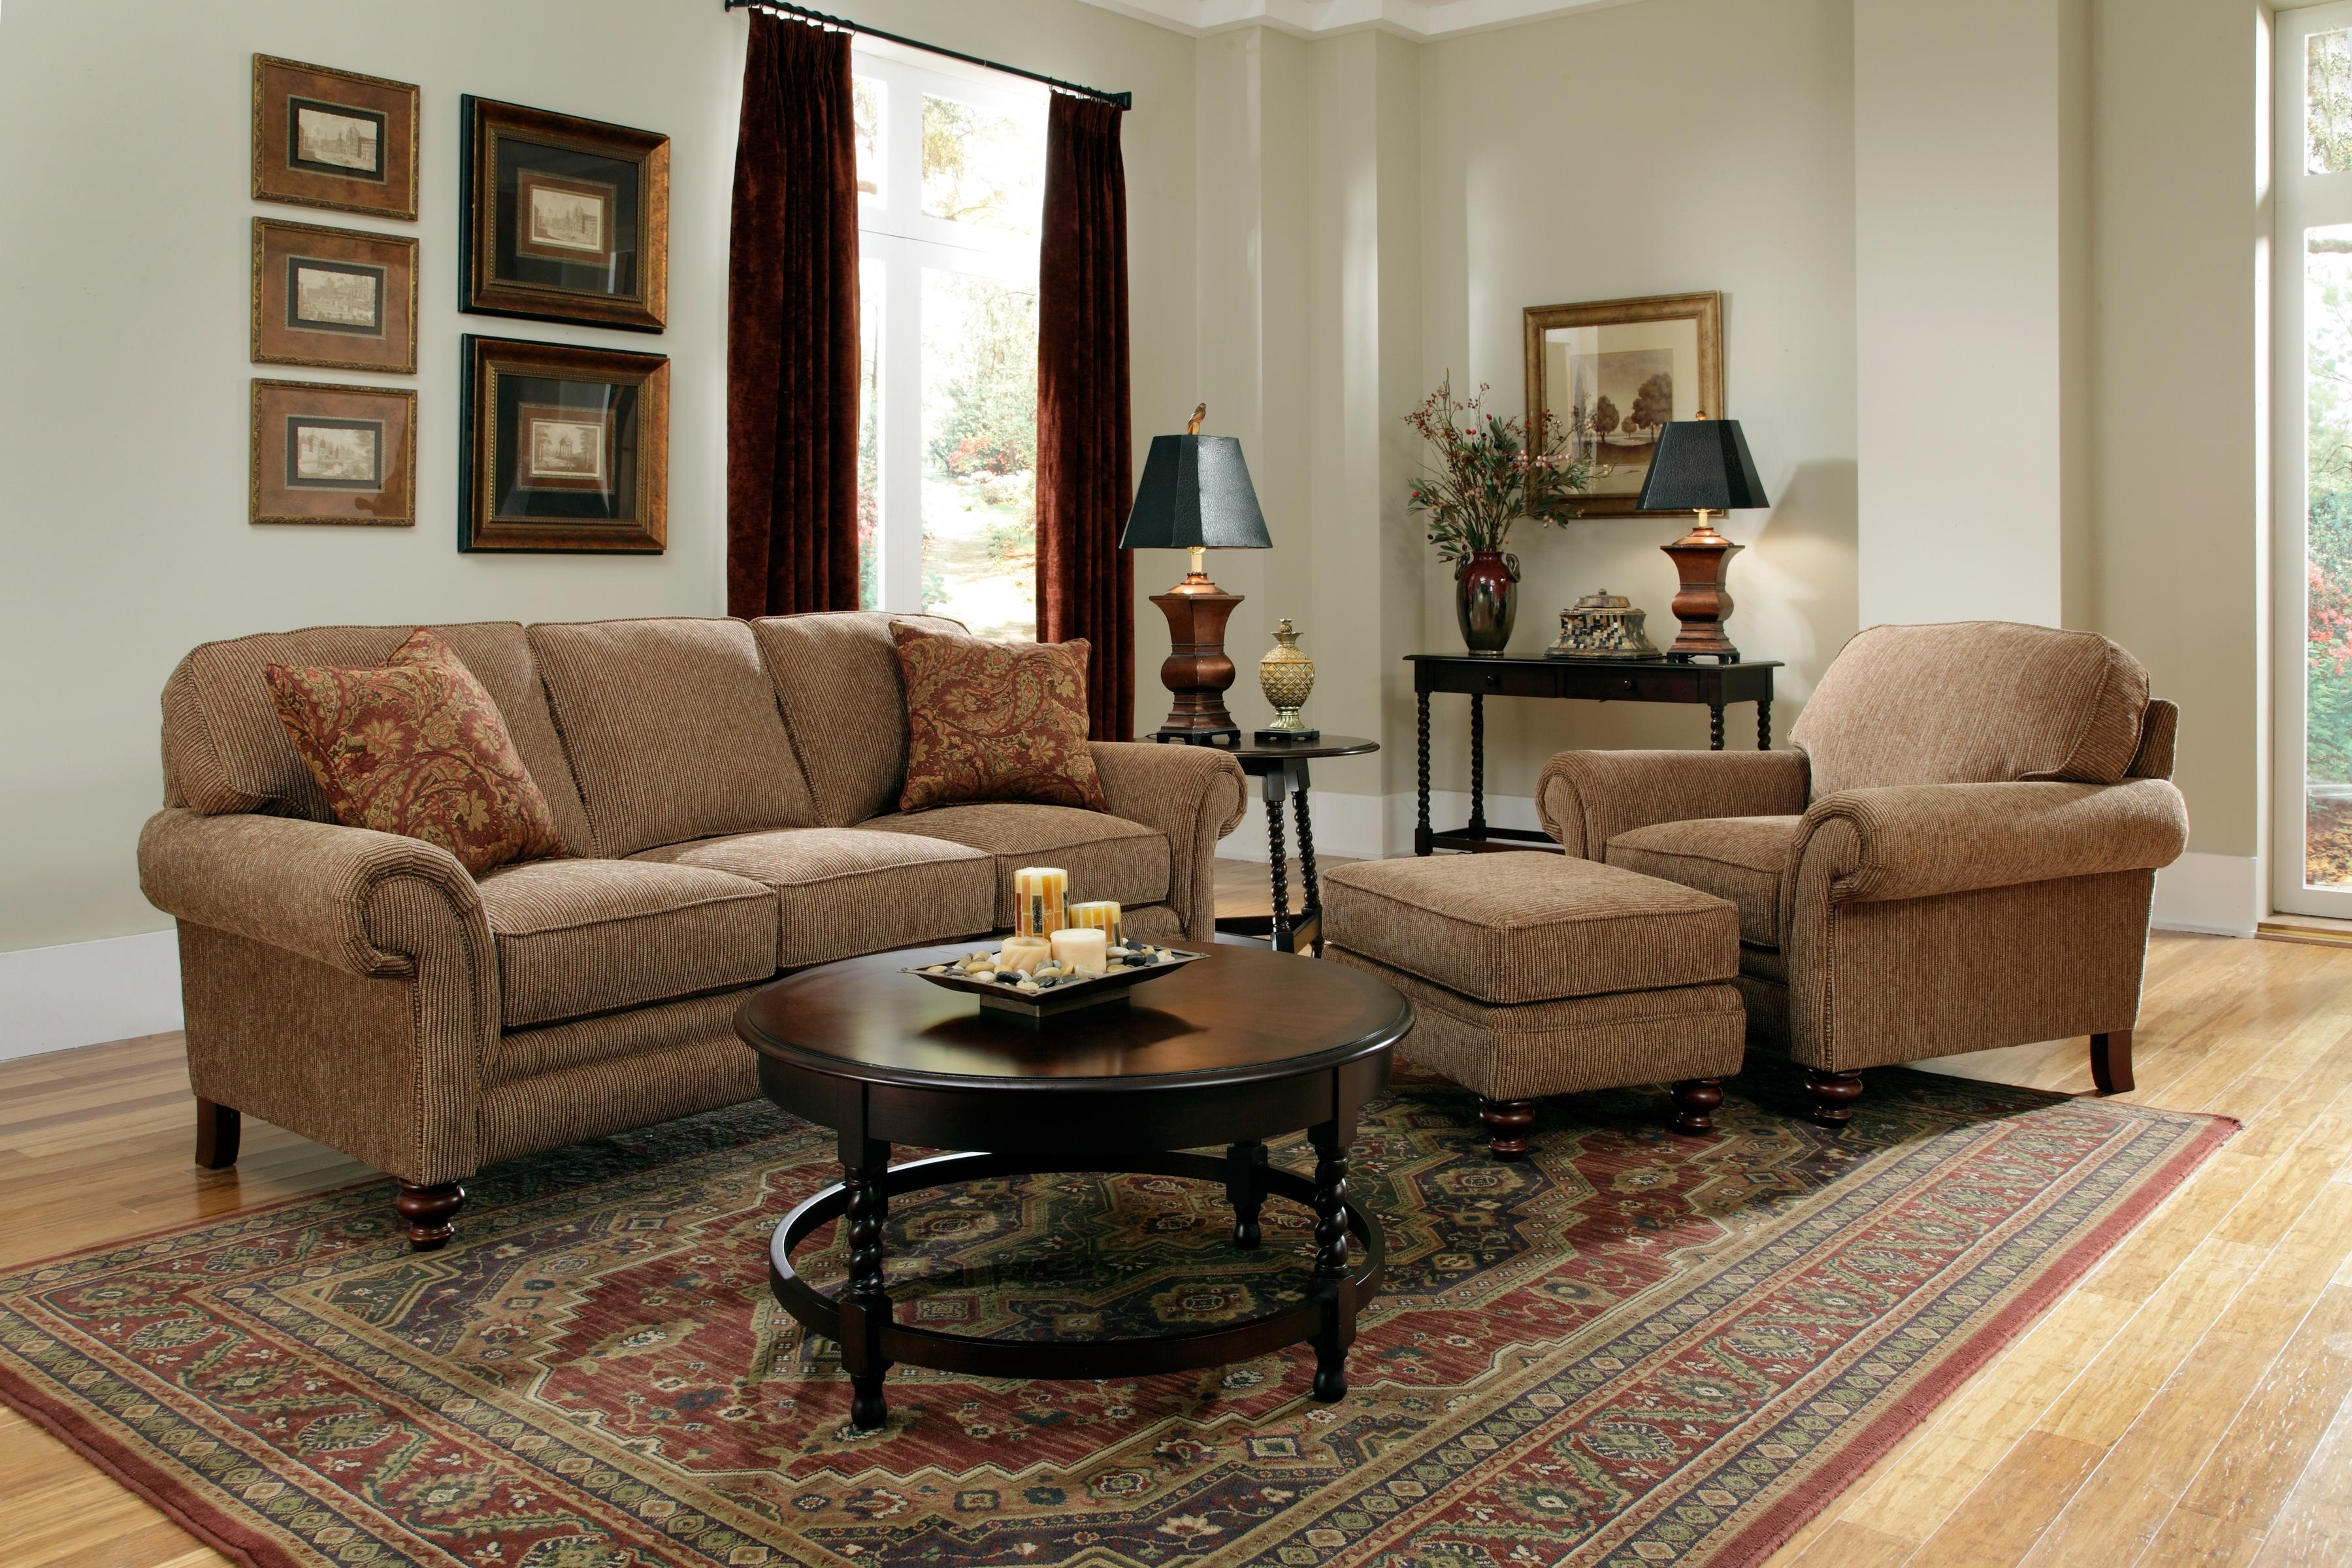 Broyhill Furniture Larissa Stationary Living Room Group Becker Furniture World Stationary